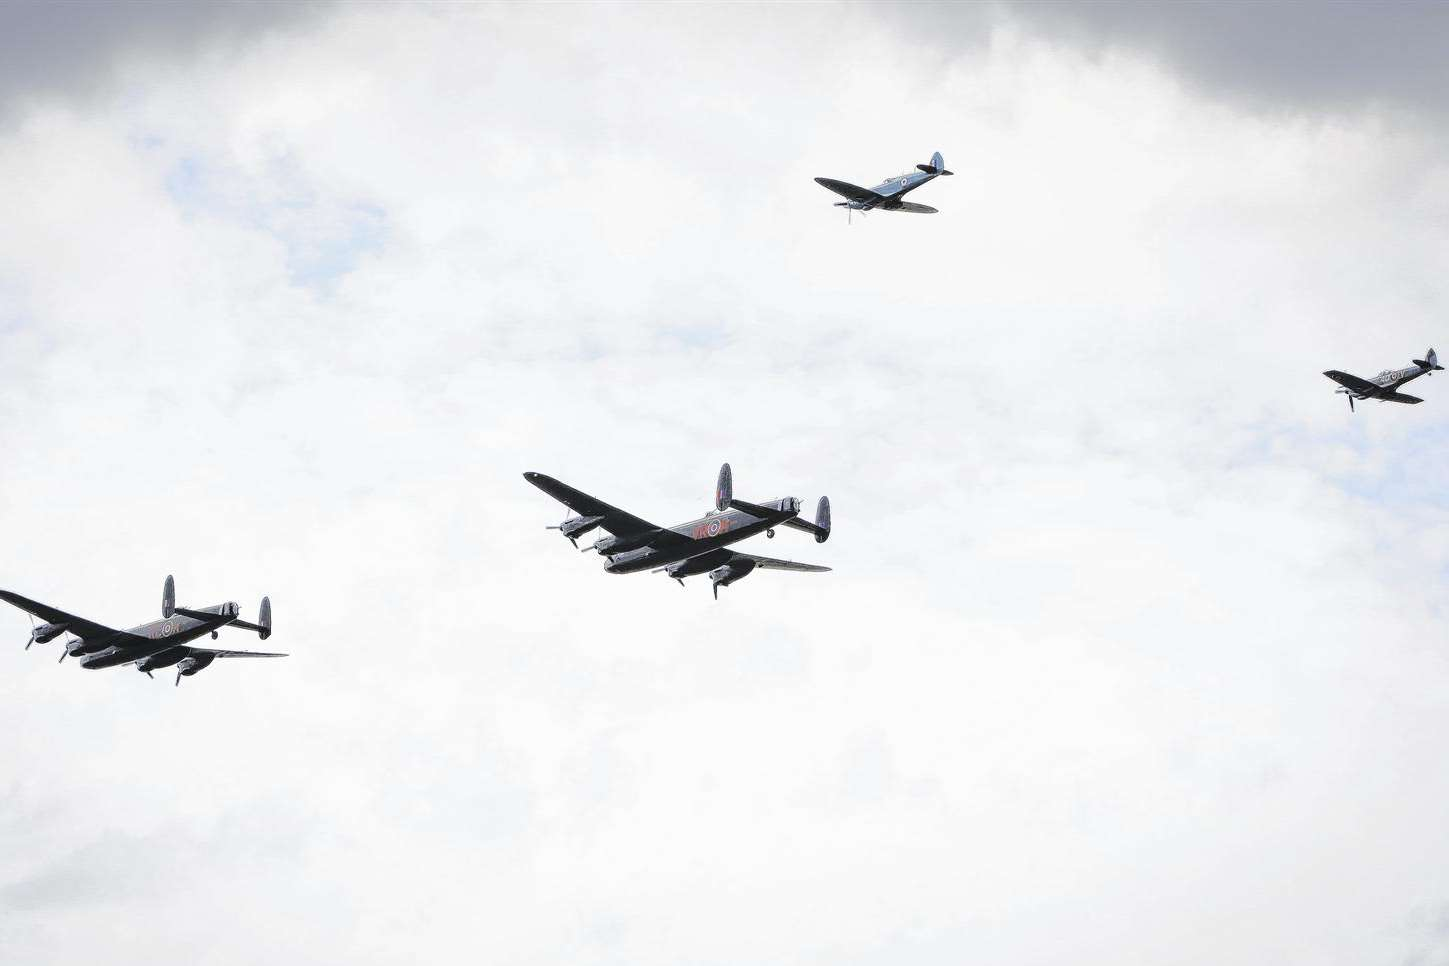 The two bombers with their fighter escort